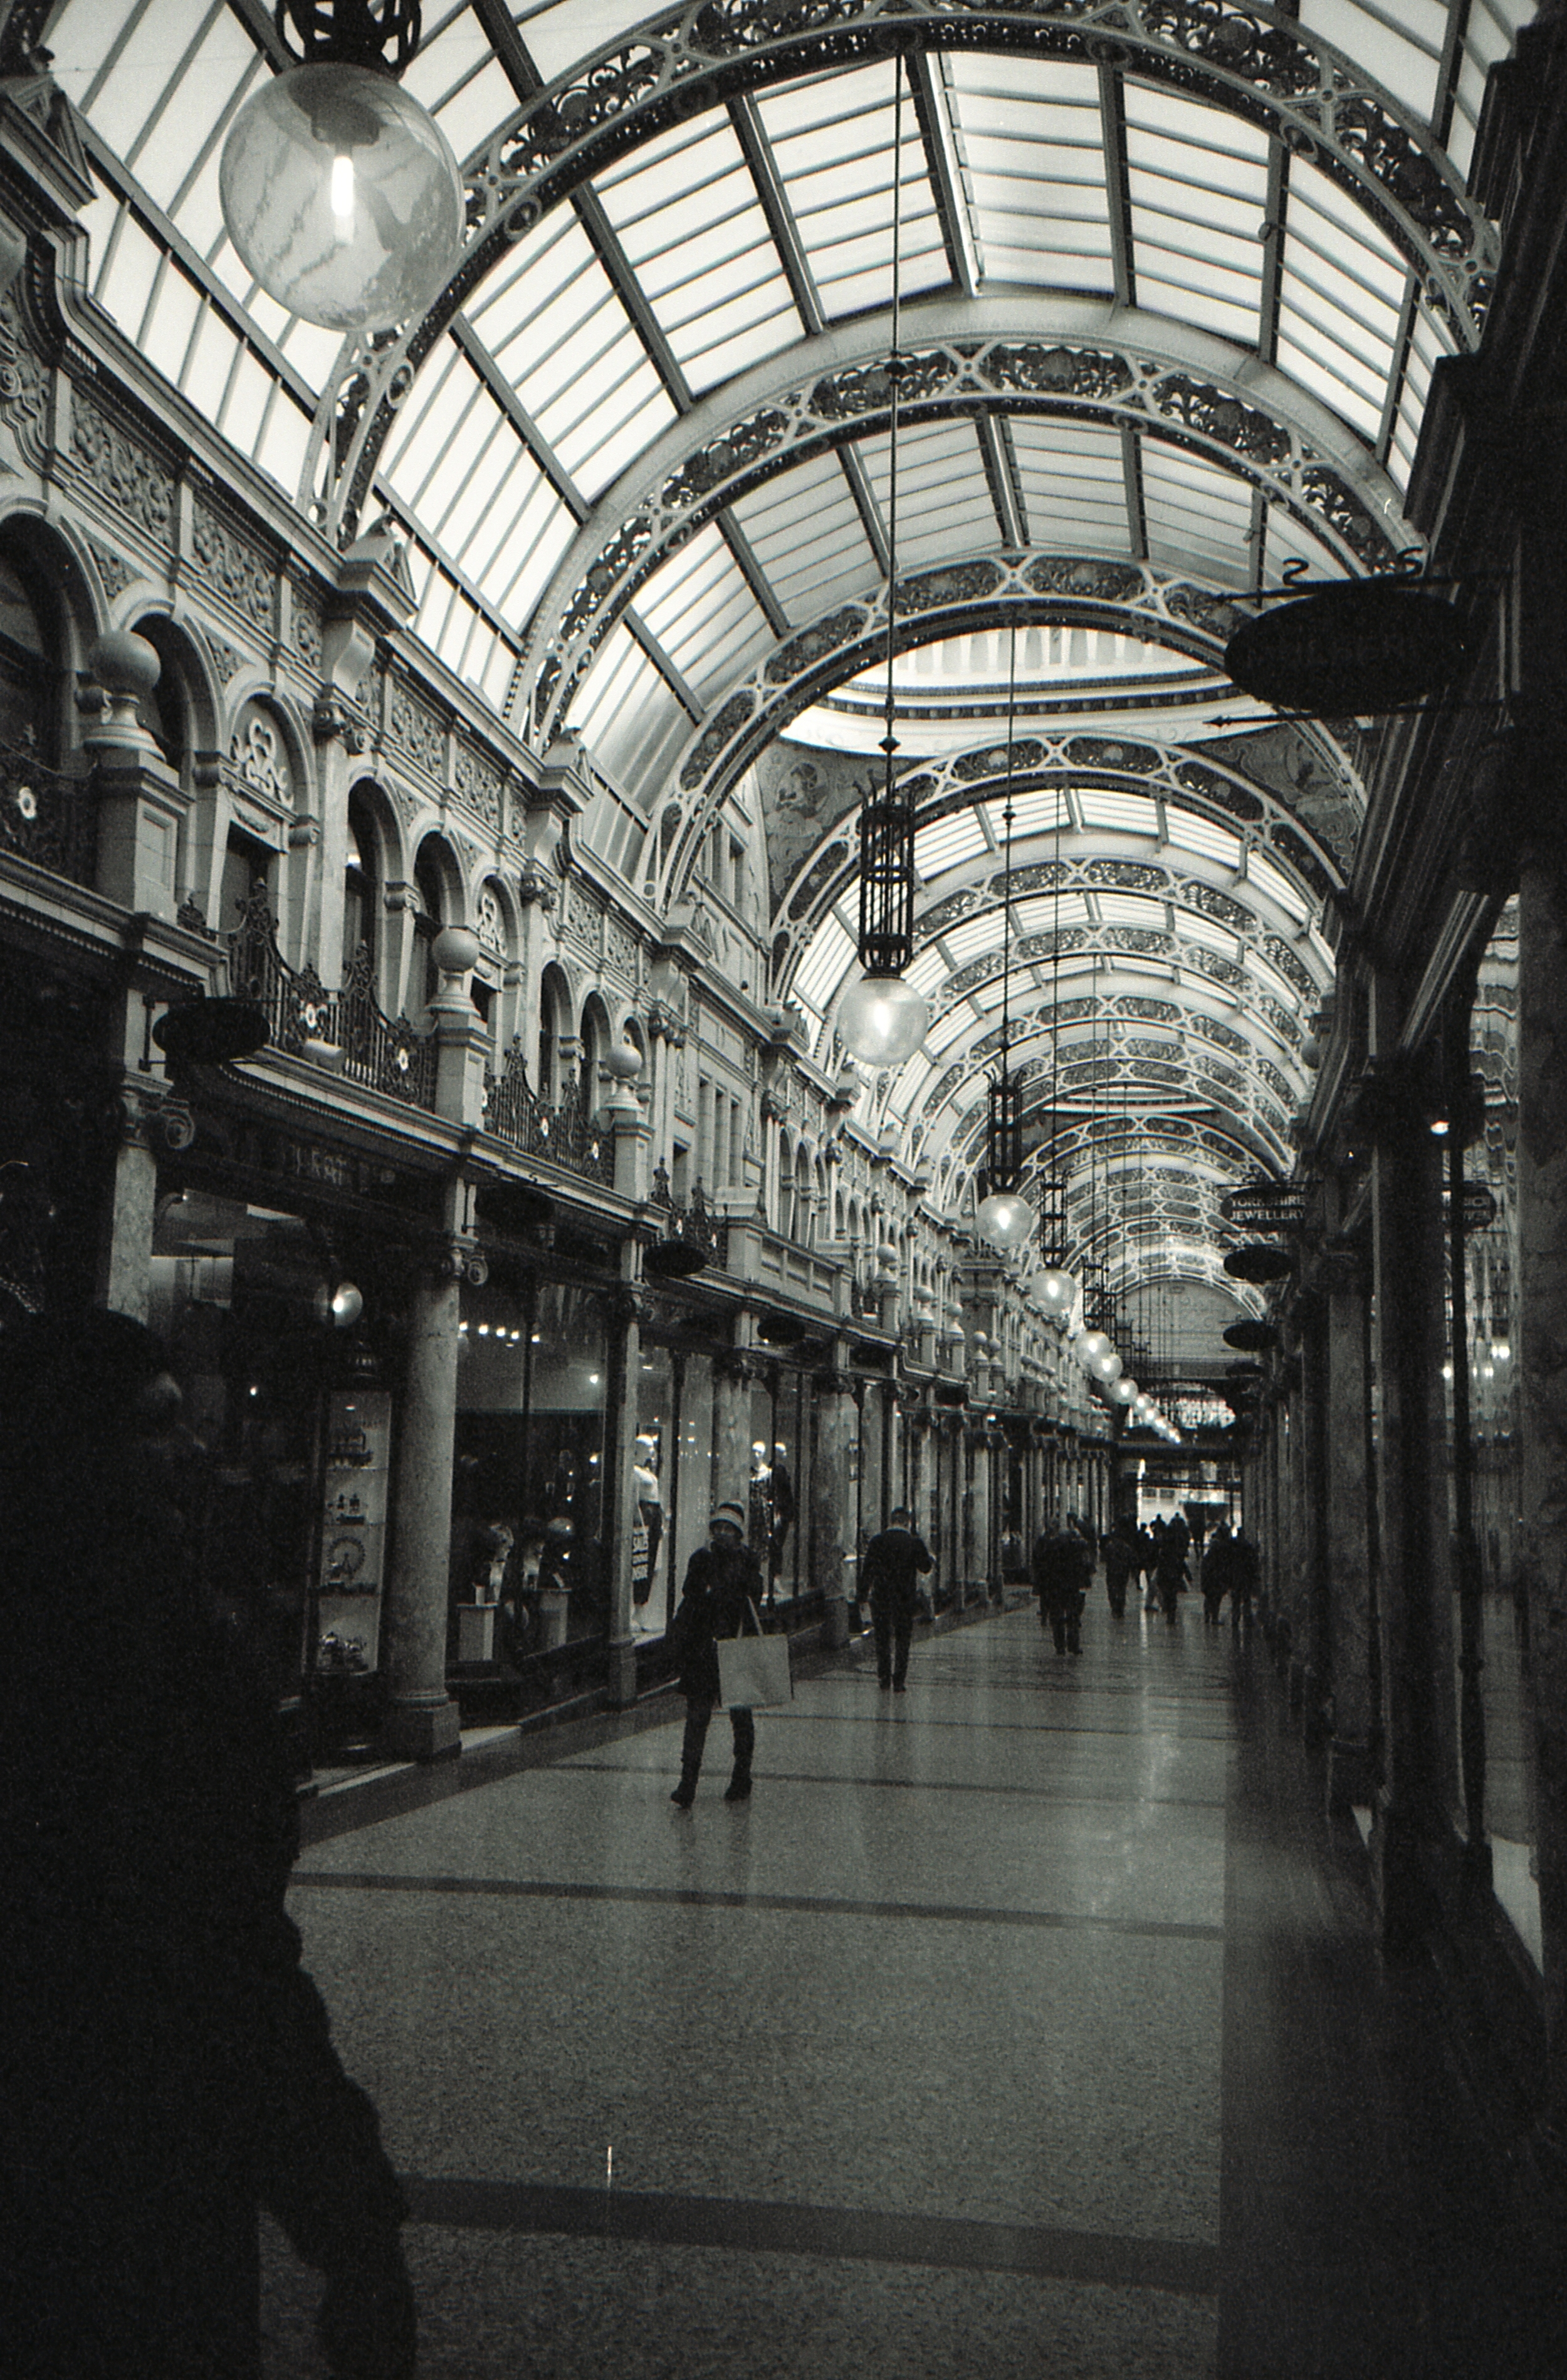 34/366 - I went back to the Victoria Quarter to see what it would look like in black and white. It did not disappoint.